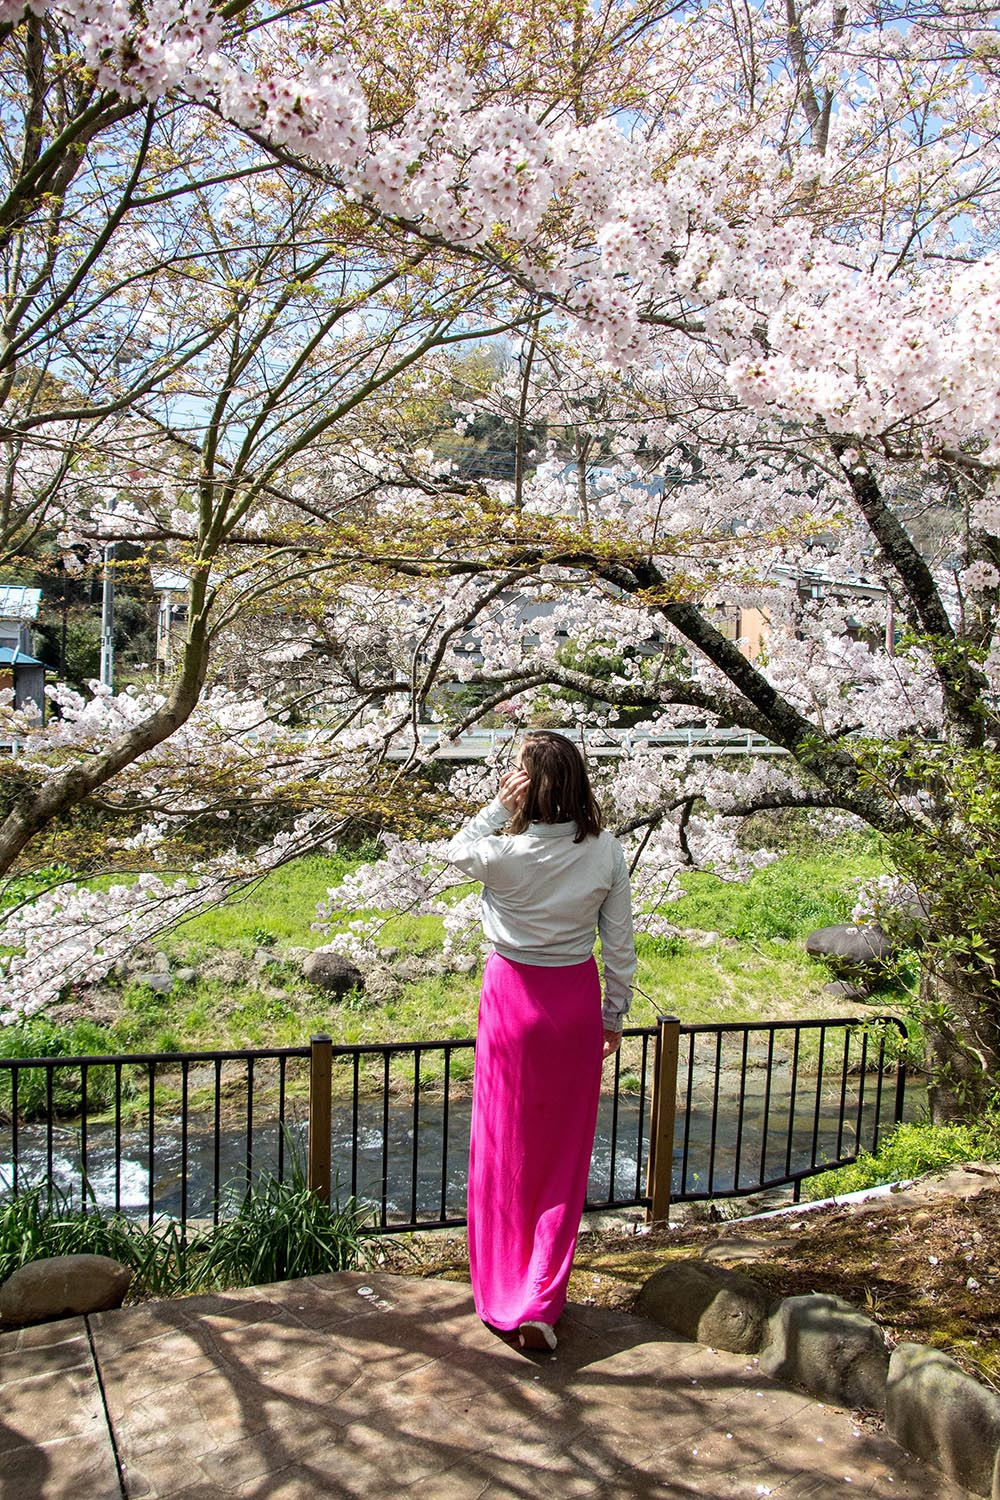 woman under cherry blossom trees